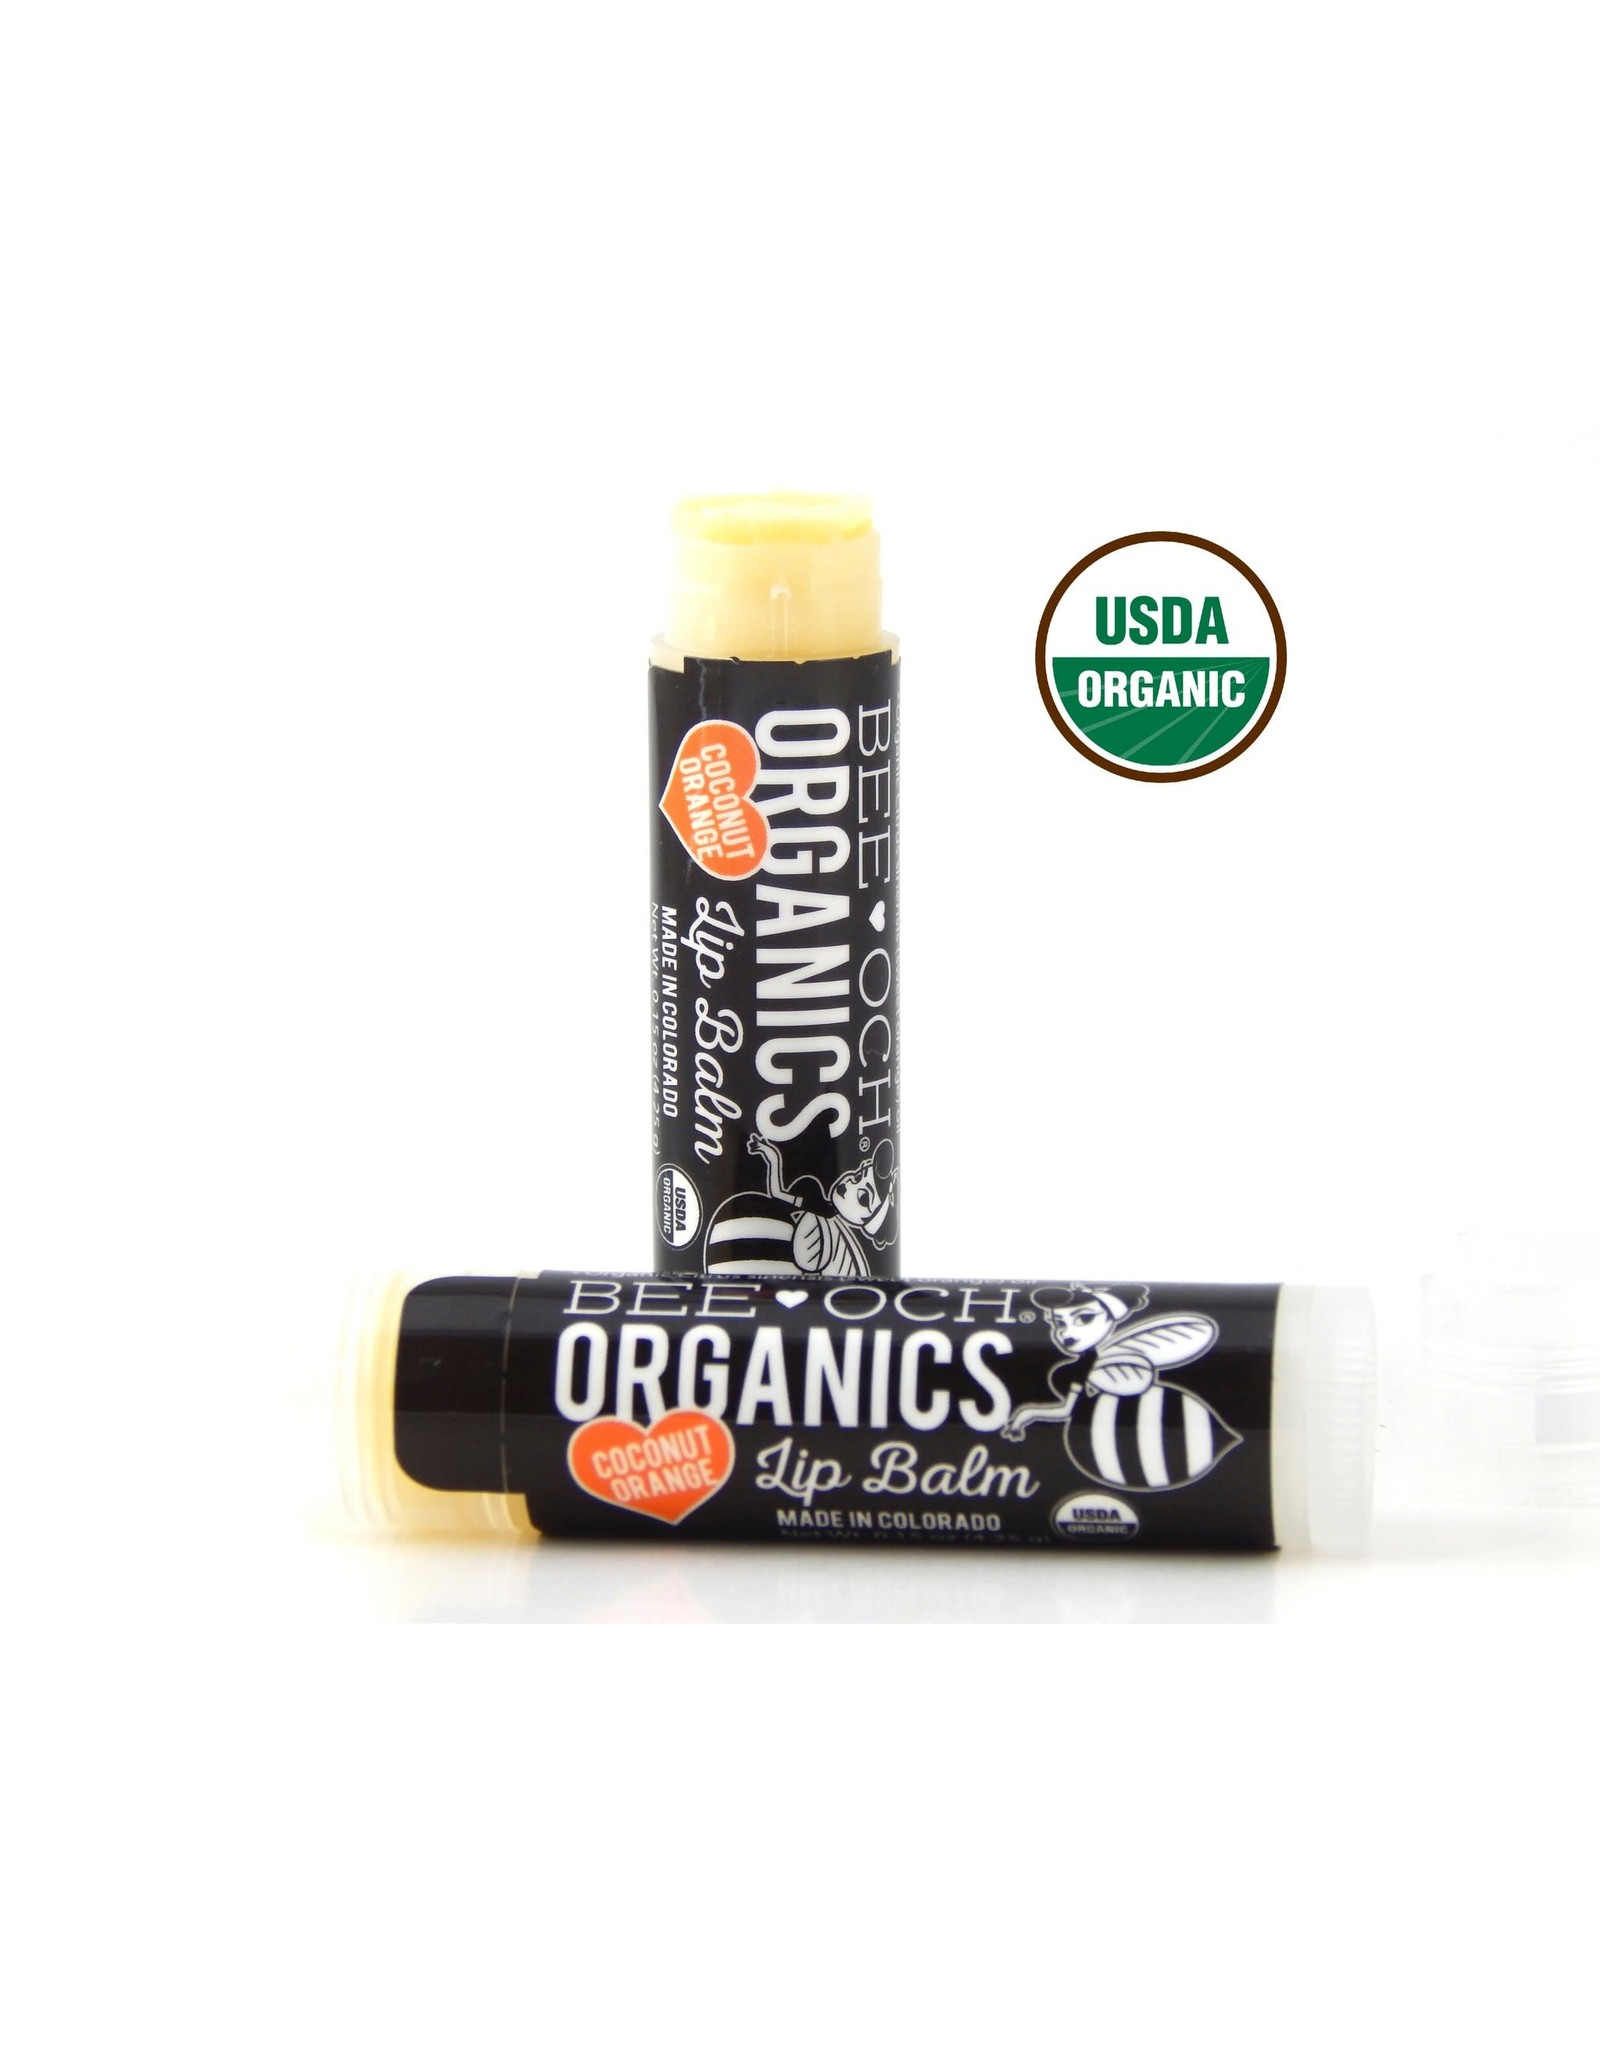 Bee Och Organics Lip Balm - Coconut Orange